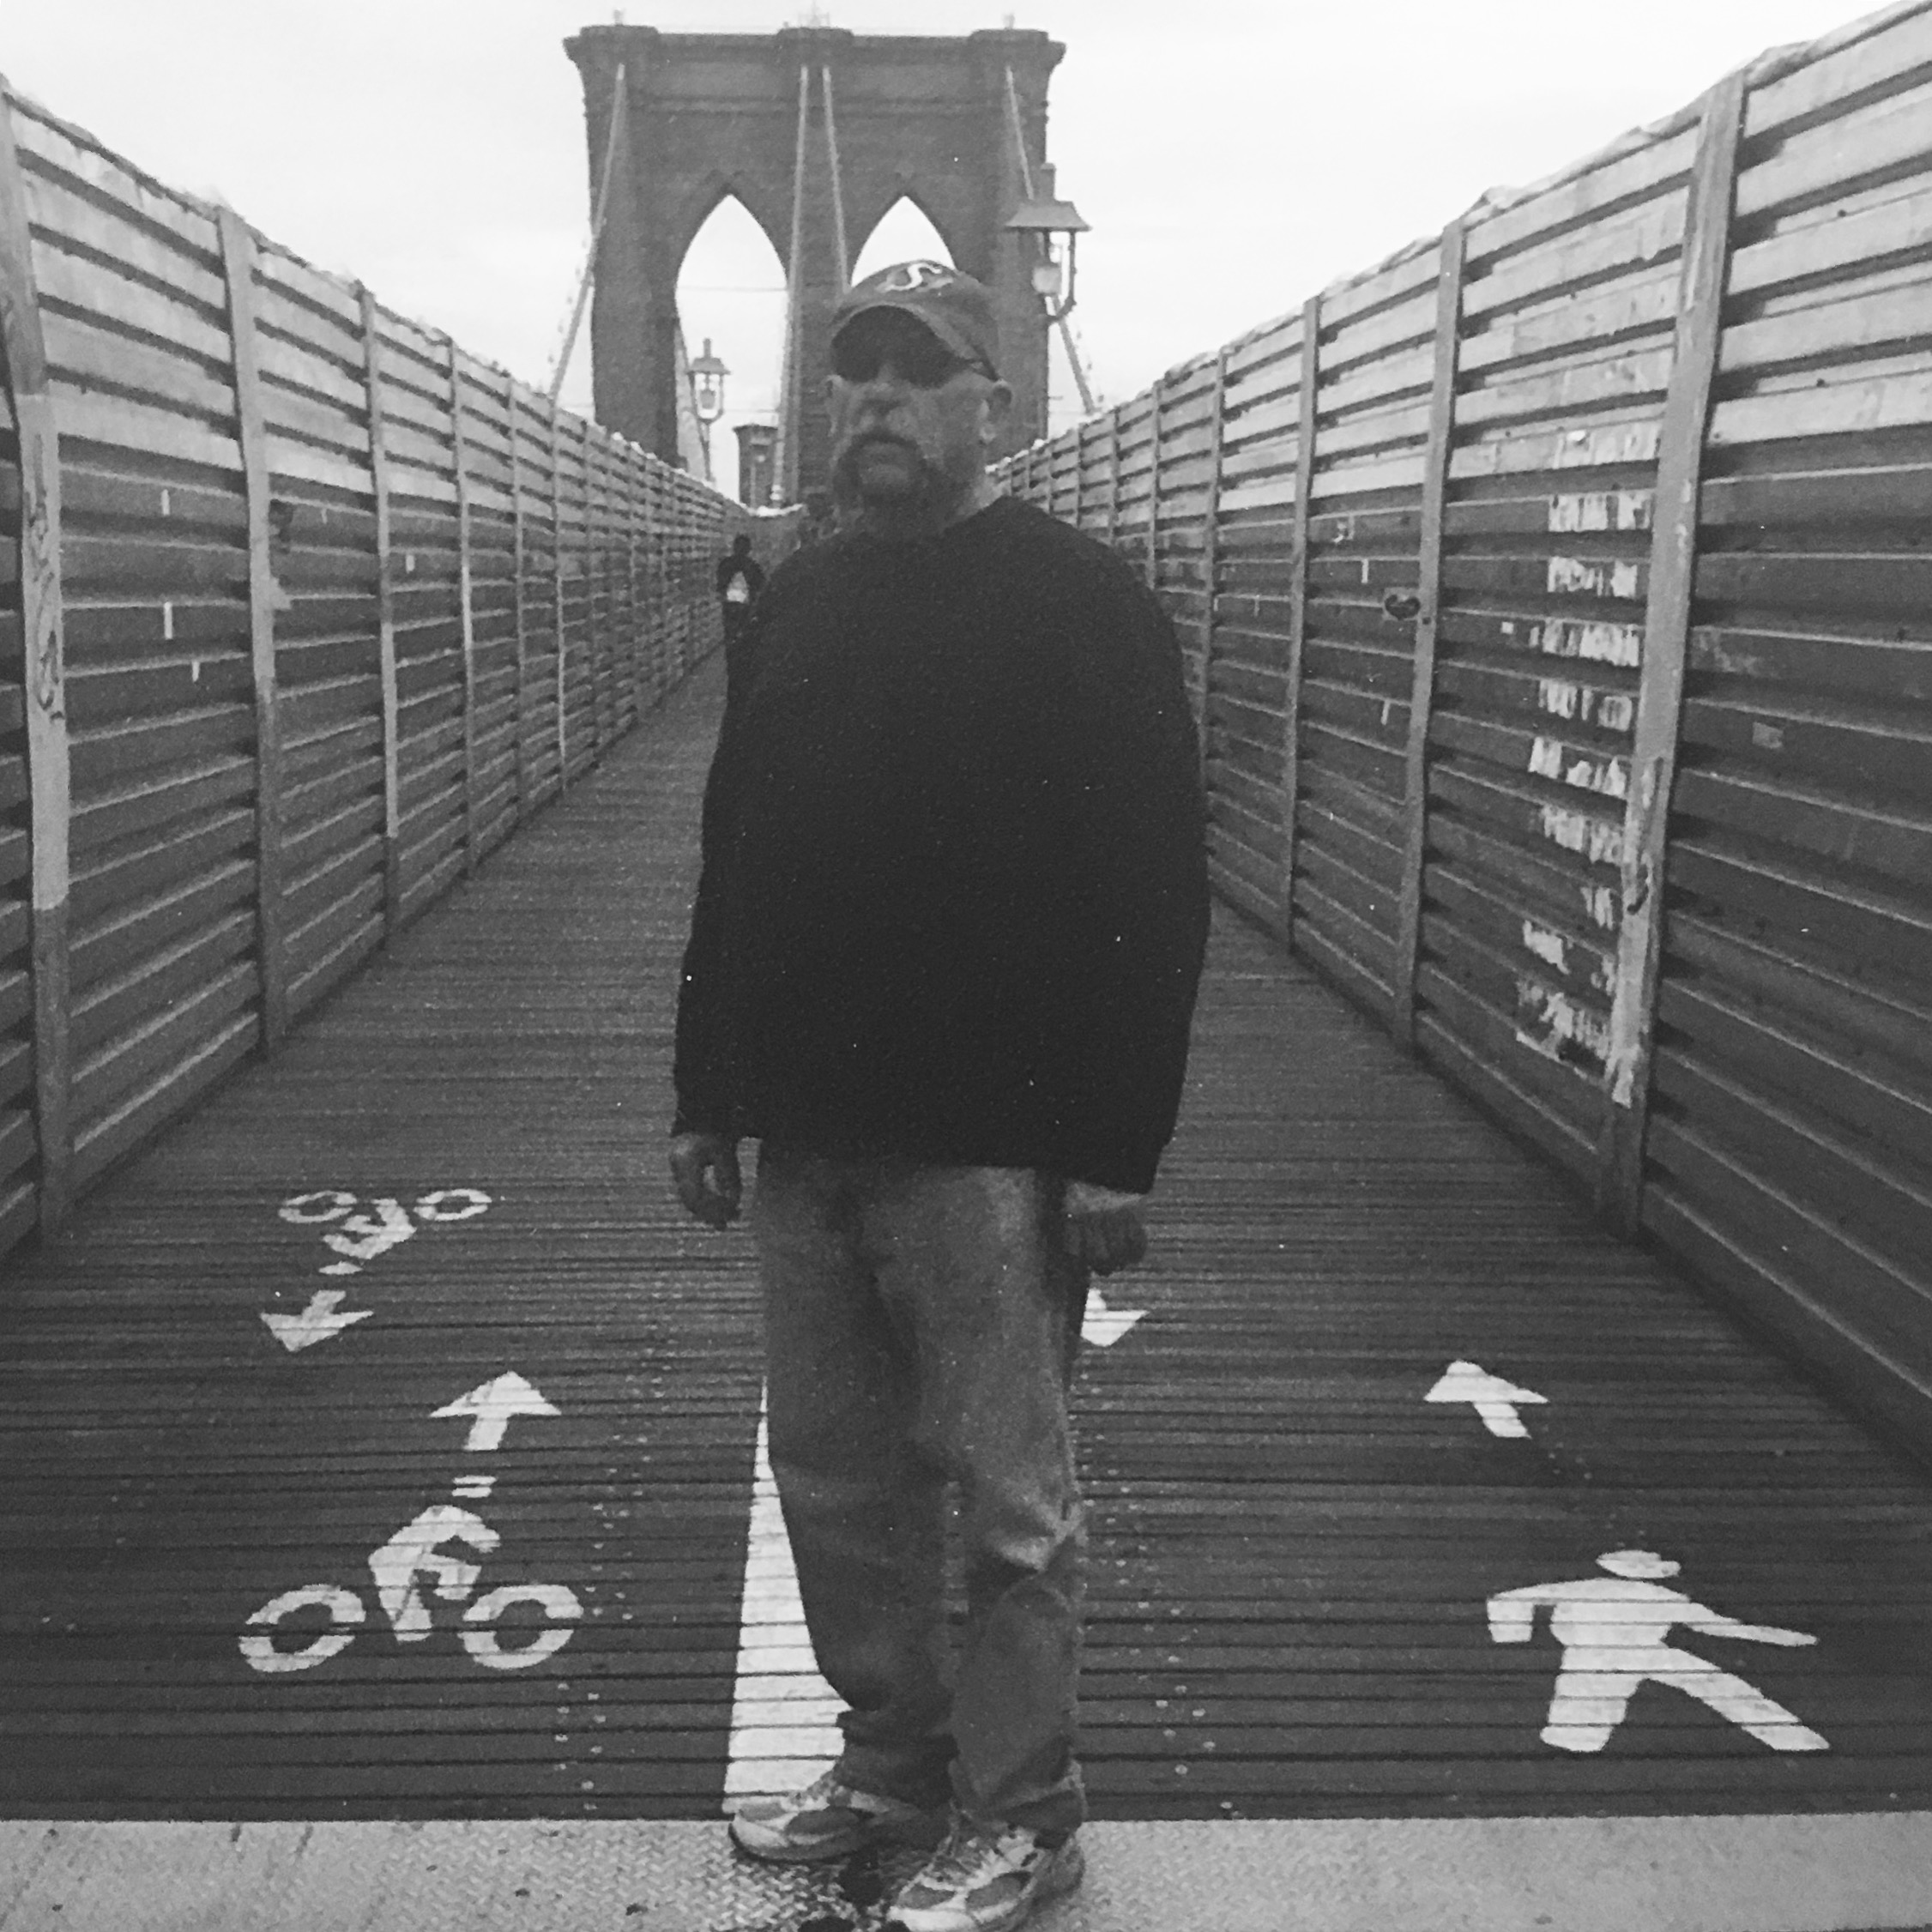 My dad in New York City, one of his favourite places (2012 ©Deborah Clague).